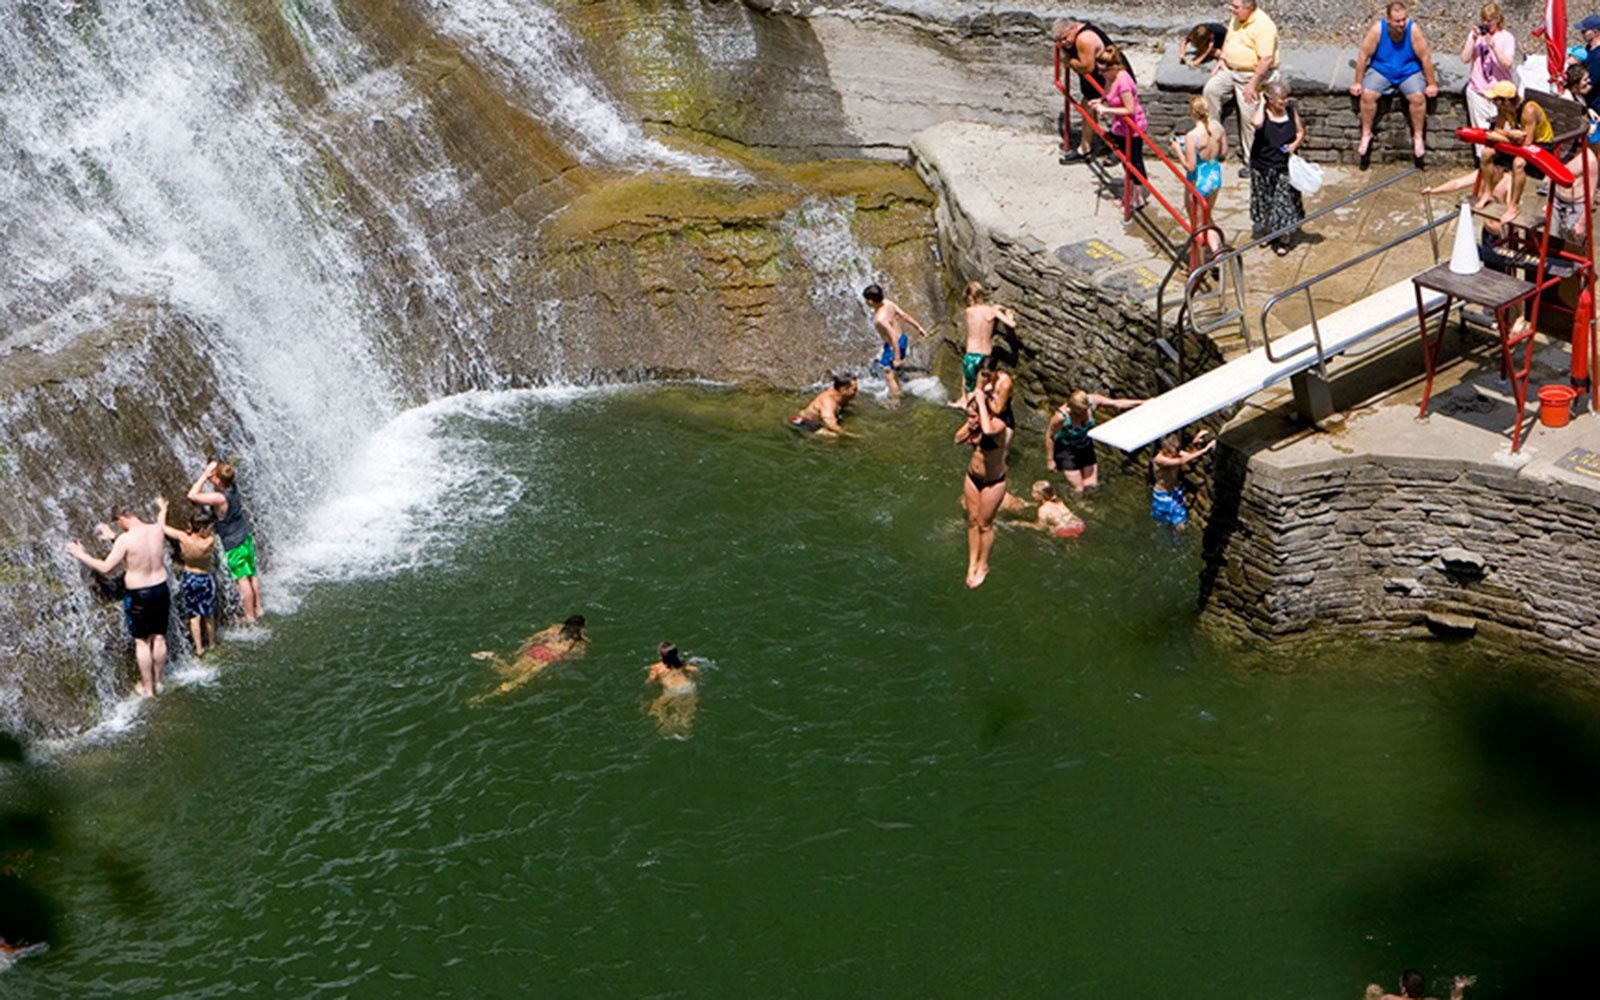 diving board at Enfield Falls swimming hole in Ithaca, NY